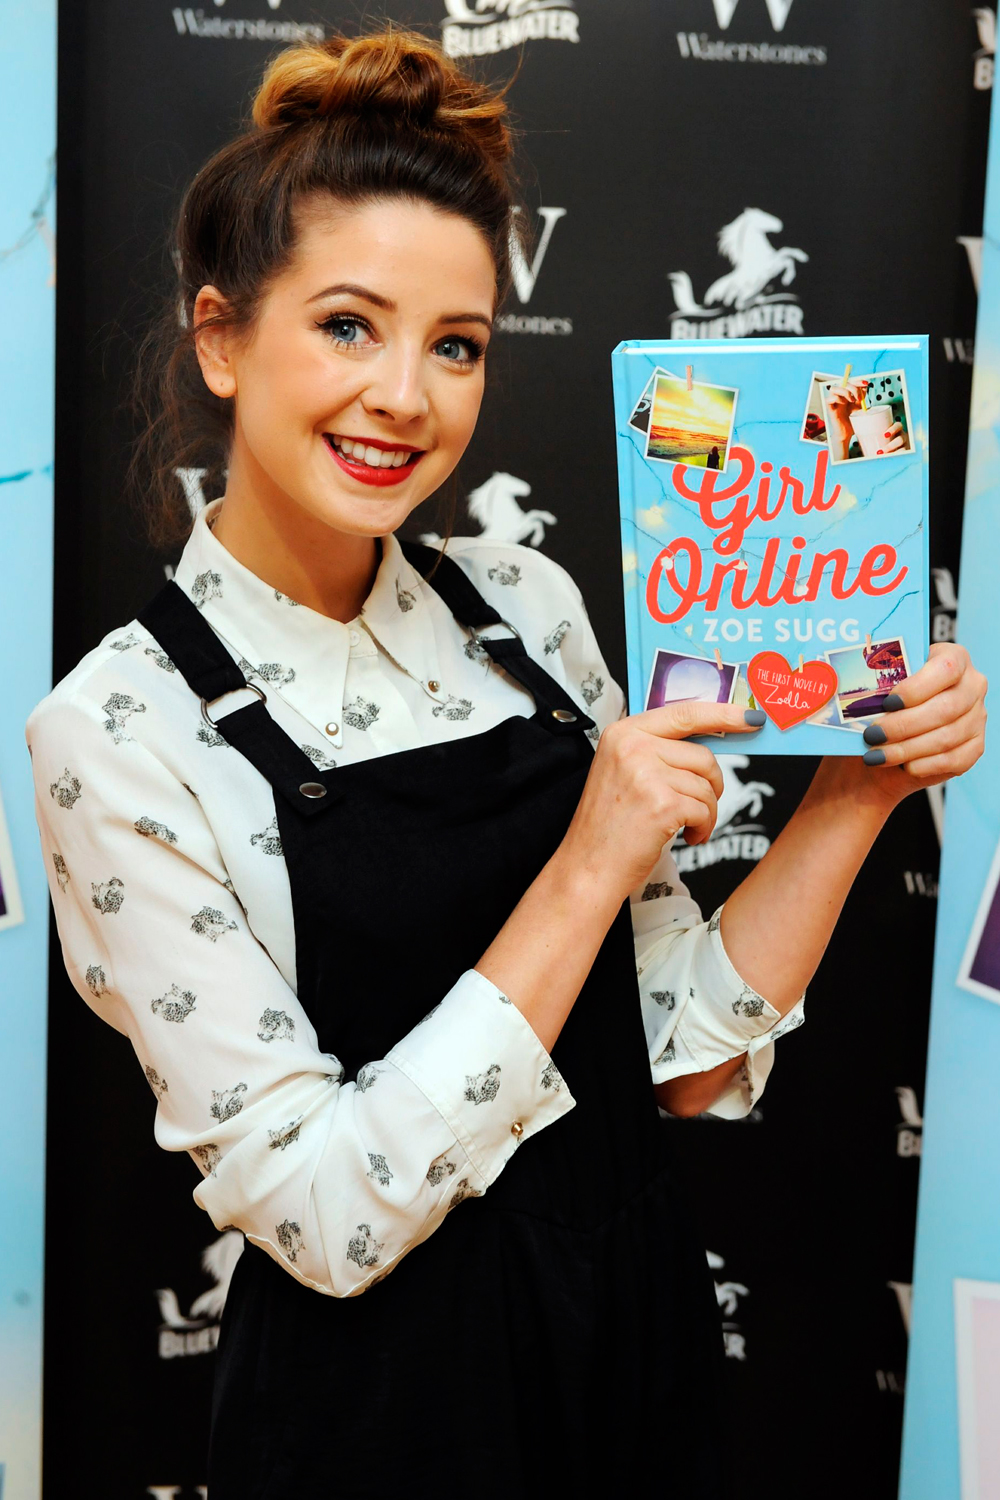 Zoella's Girl Online Book Is The Fastest Selling Debut Novel Of All Time  Zoella's Girl Online